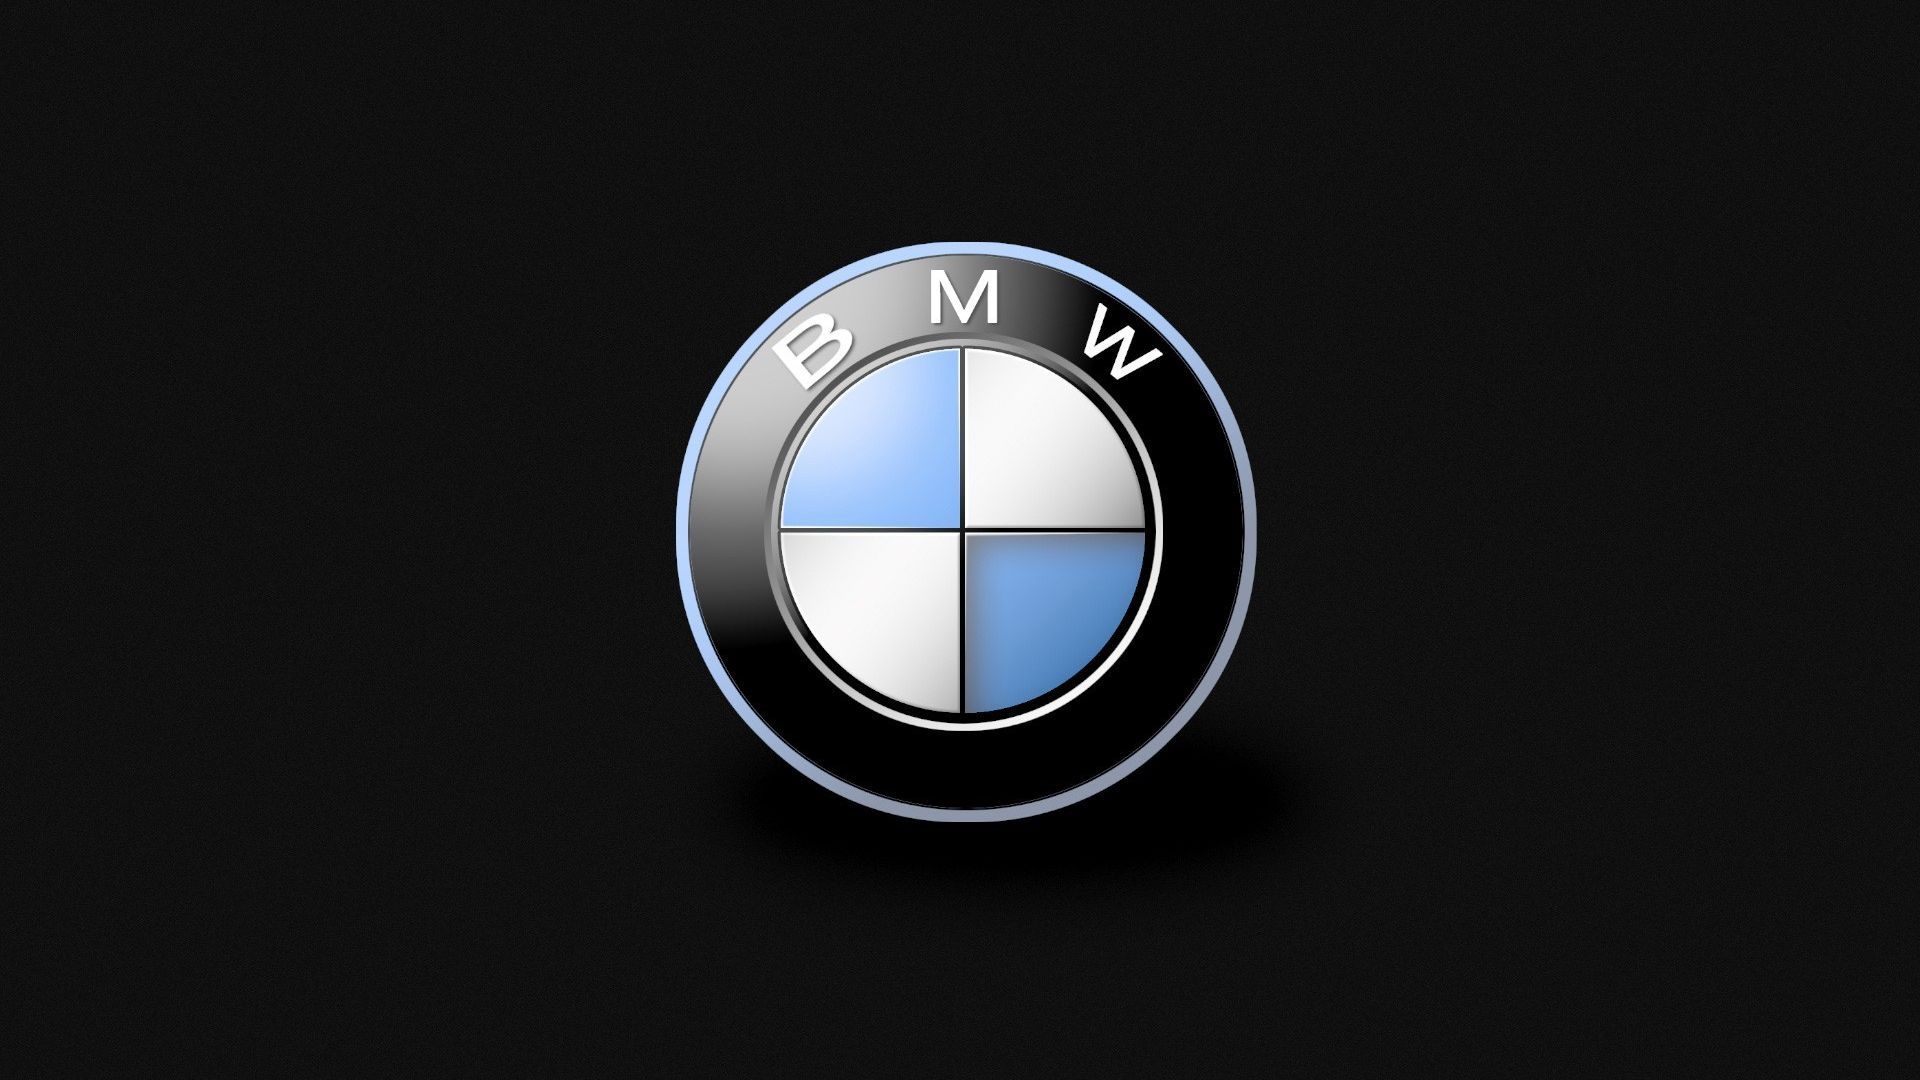 Bmw Car Brand Logo And Black Background Free Photo Wallpaper Mewallpaper